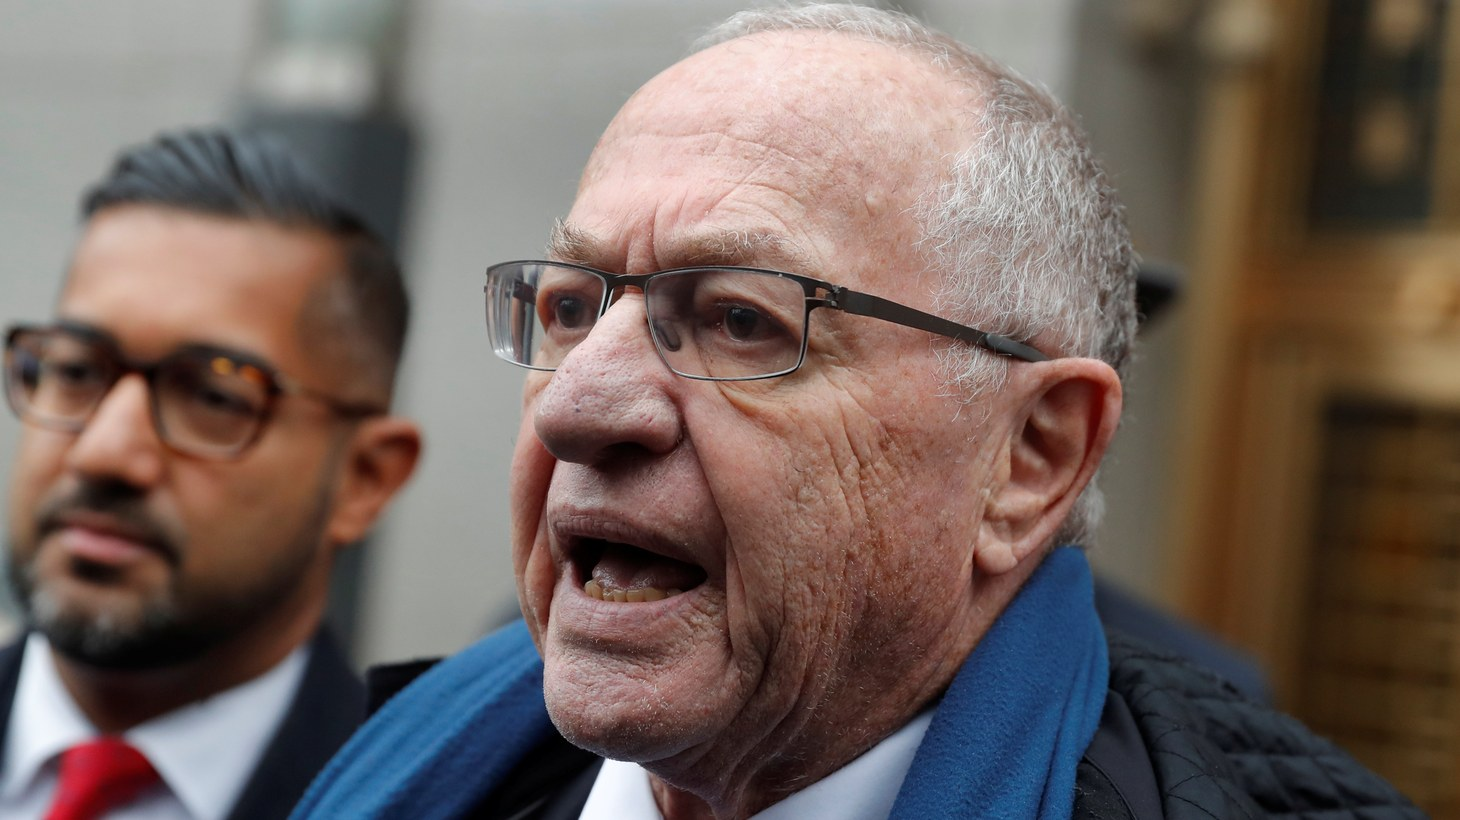 Alan Dershowitz leaves the Manhattan Federal Court in New York, following a status conference in the defamation lawsuit brought by Virginia Giuffre against Dershowitz over discovery issues in Manhattan, New York, U.S., December 2, 2019.